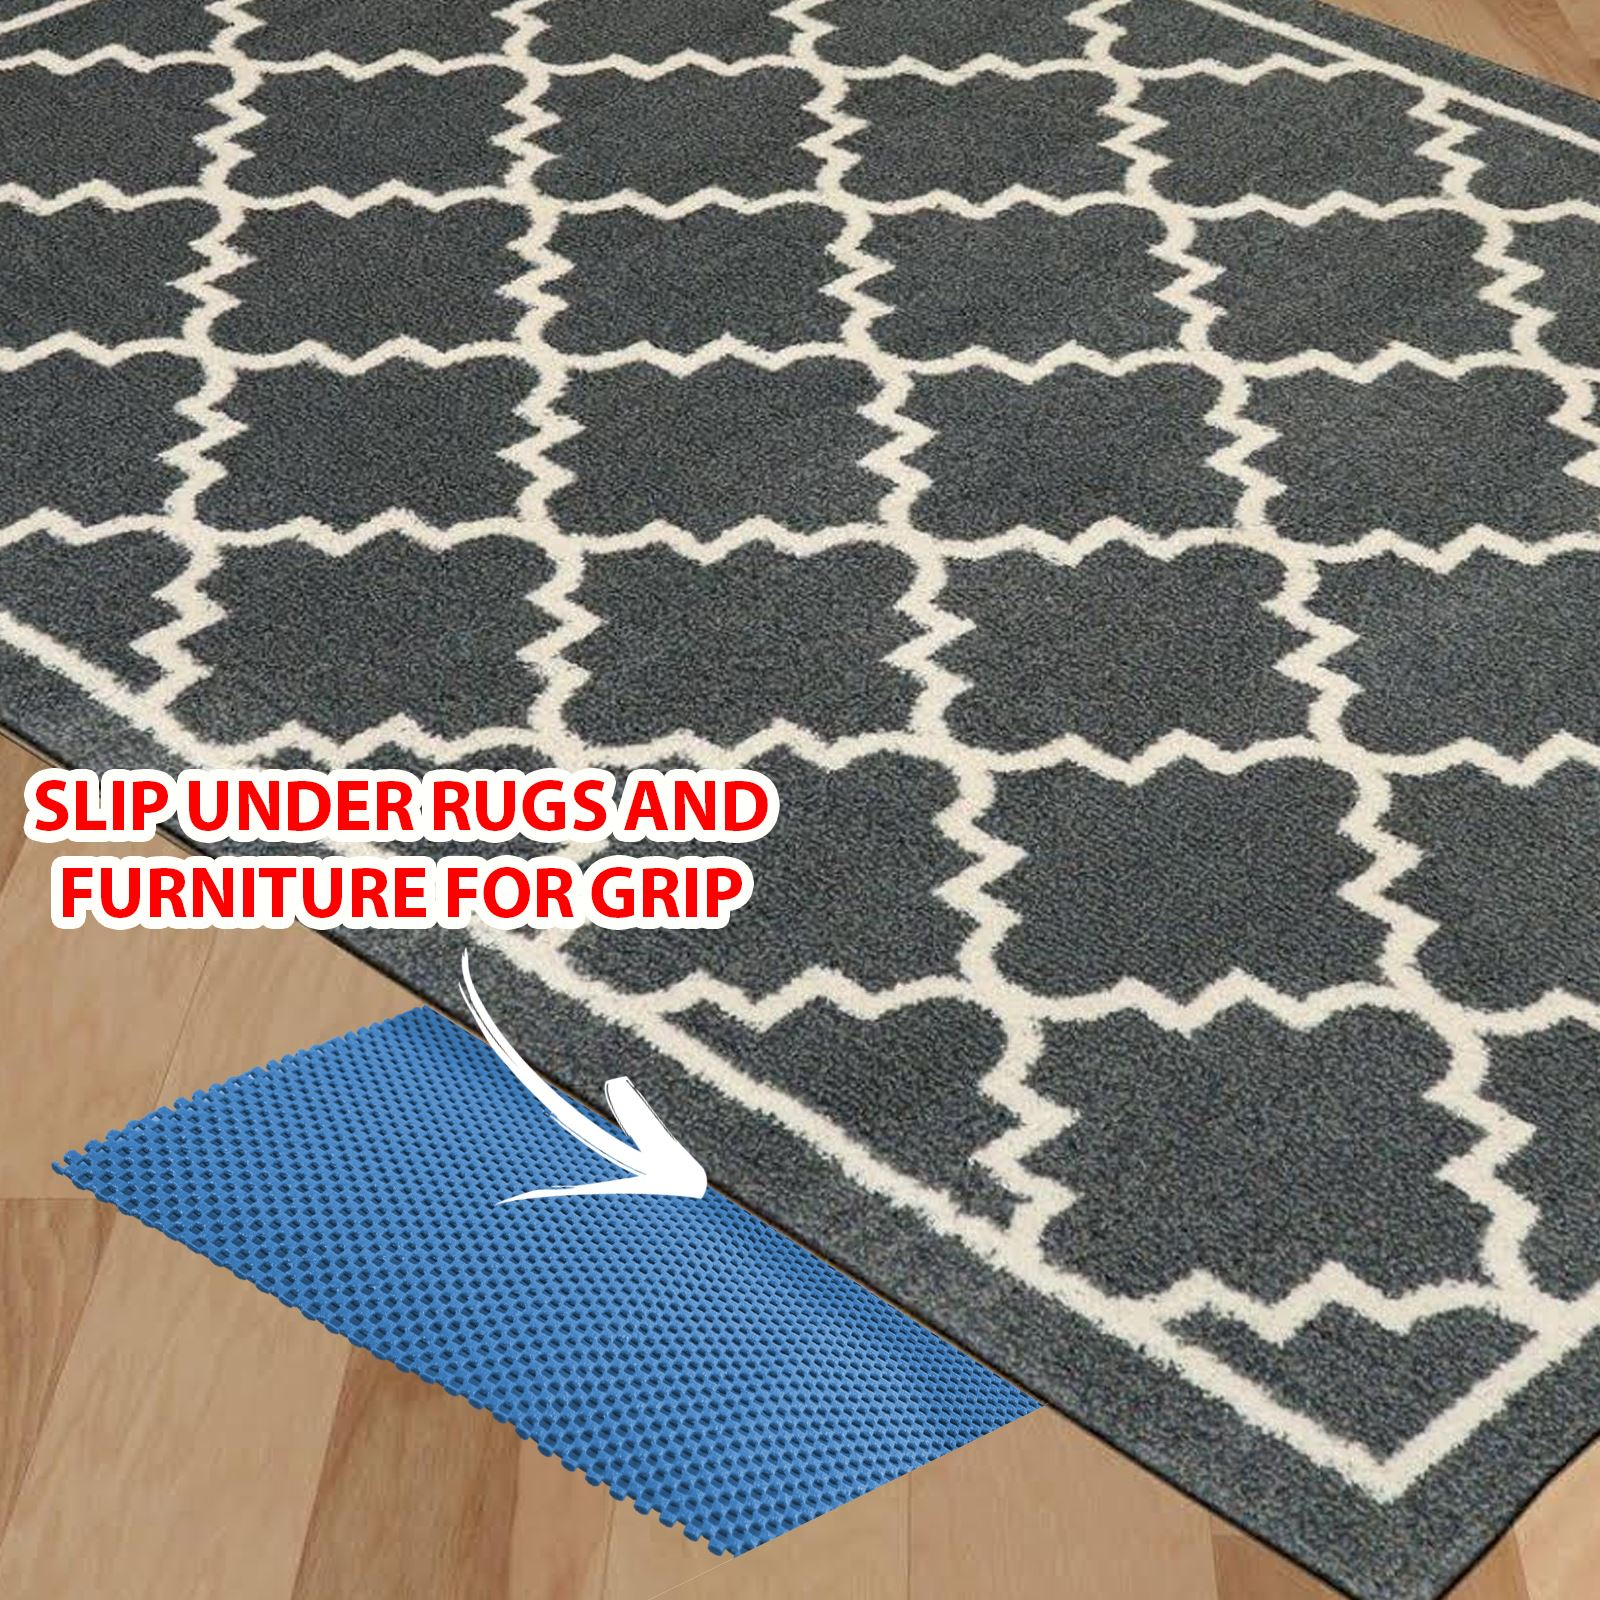 multi purpose anti non slip rubber mat drawer liner flooring gripper carpet rug ebay. Black Bedroom Furniture Sets. Home Design Ideas